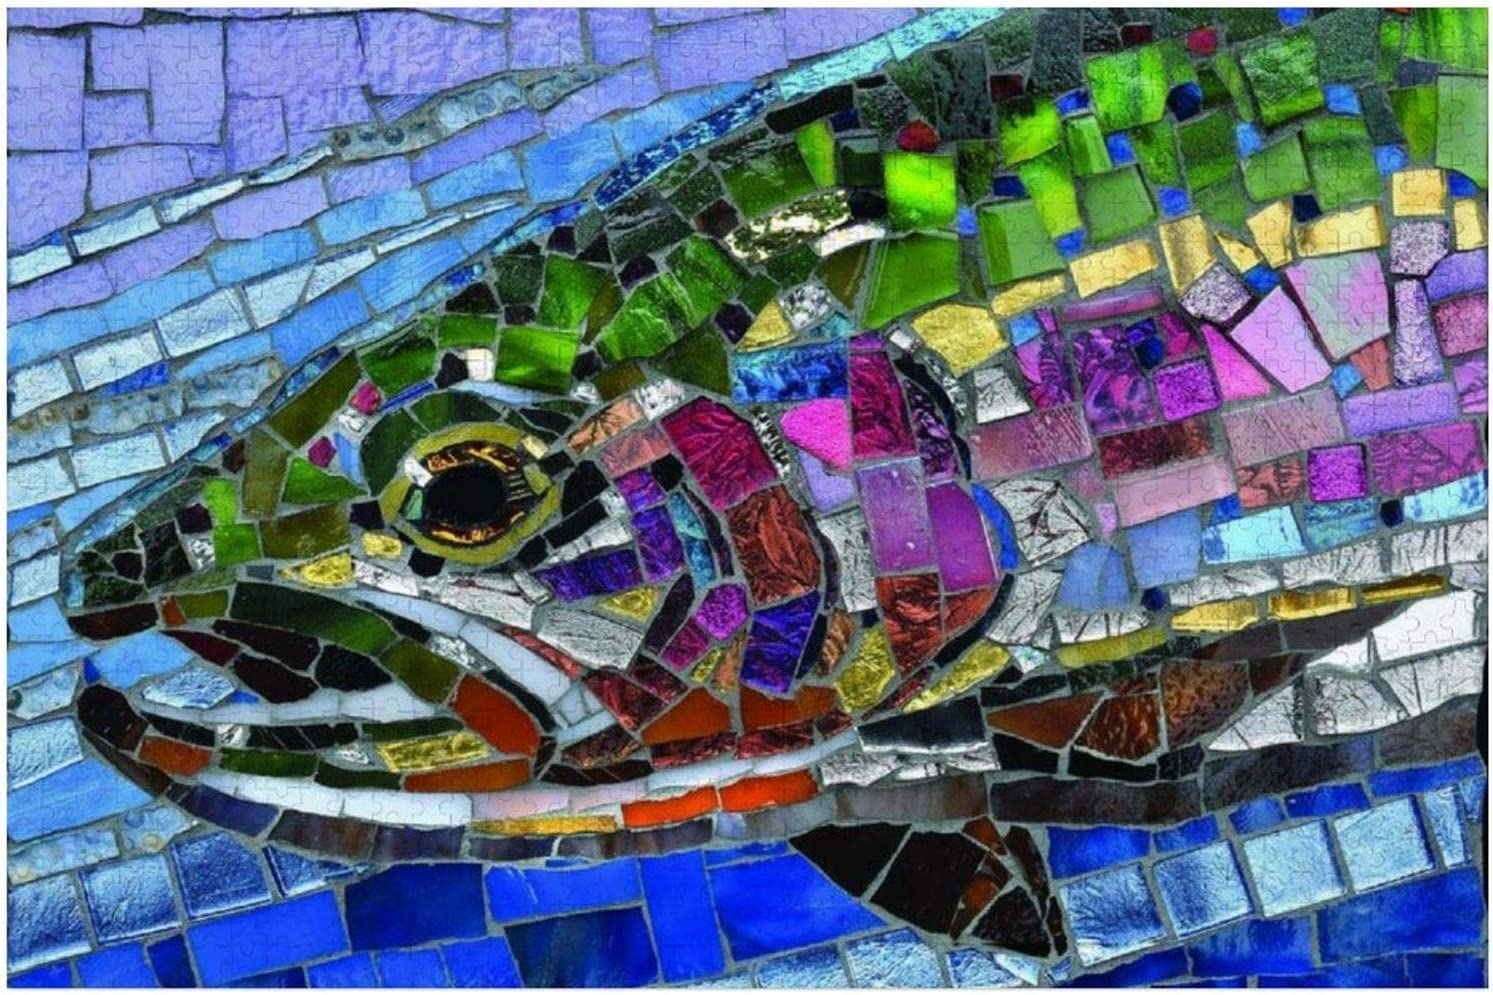 1000 Piece Wooden Jigsaw Puzzle Glass Larg Bargain Rainbow Stained Trout Austin Mall